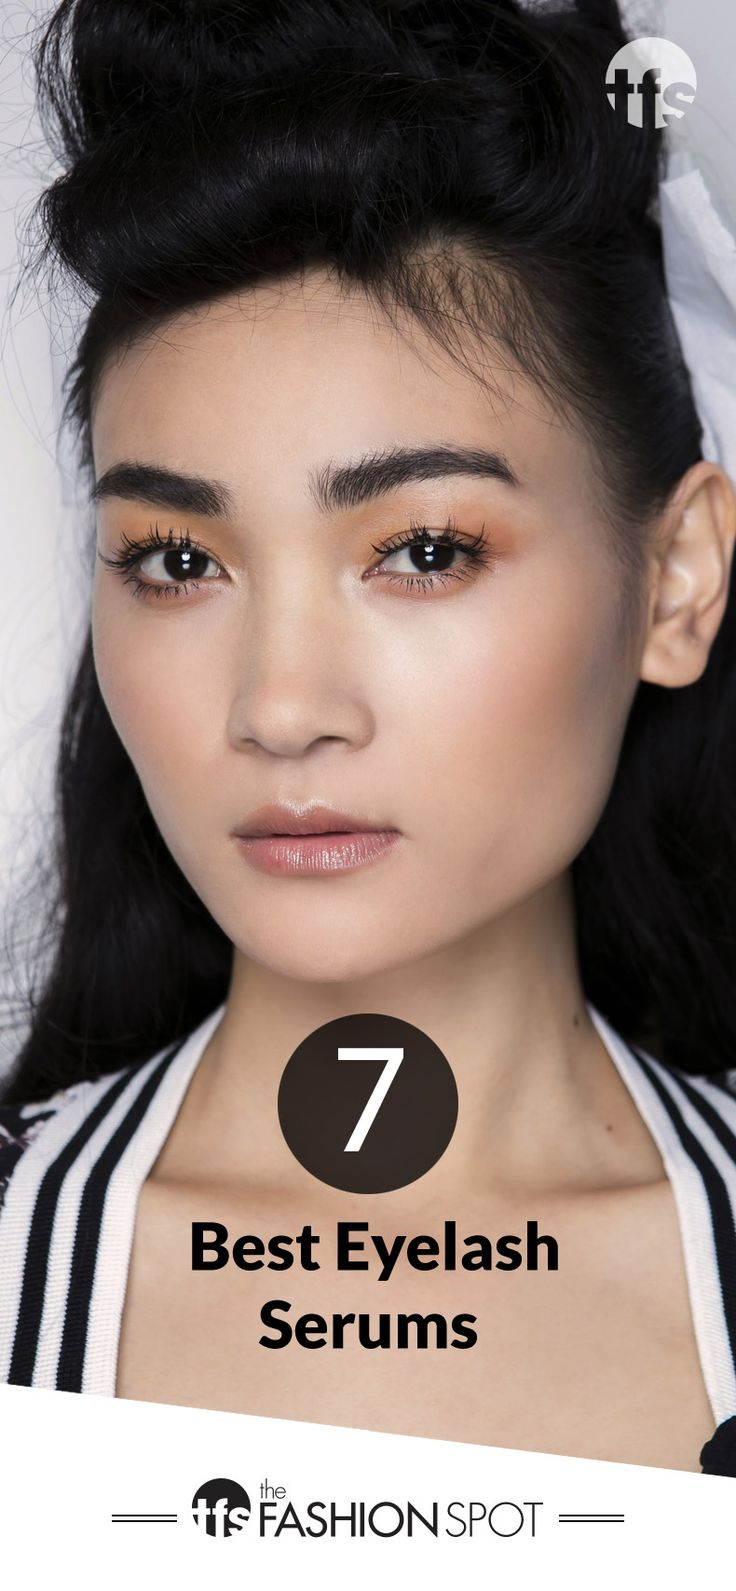 7 best eyelash serums that promote growth and lengthening